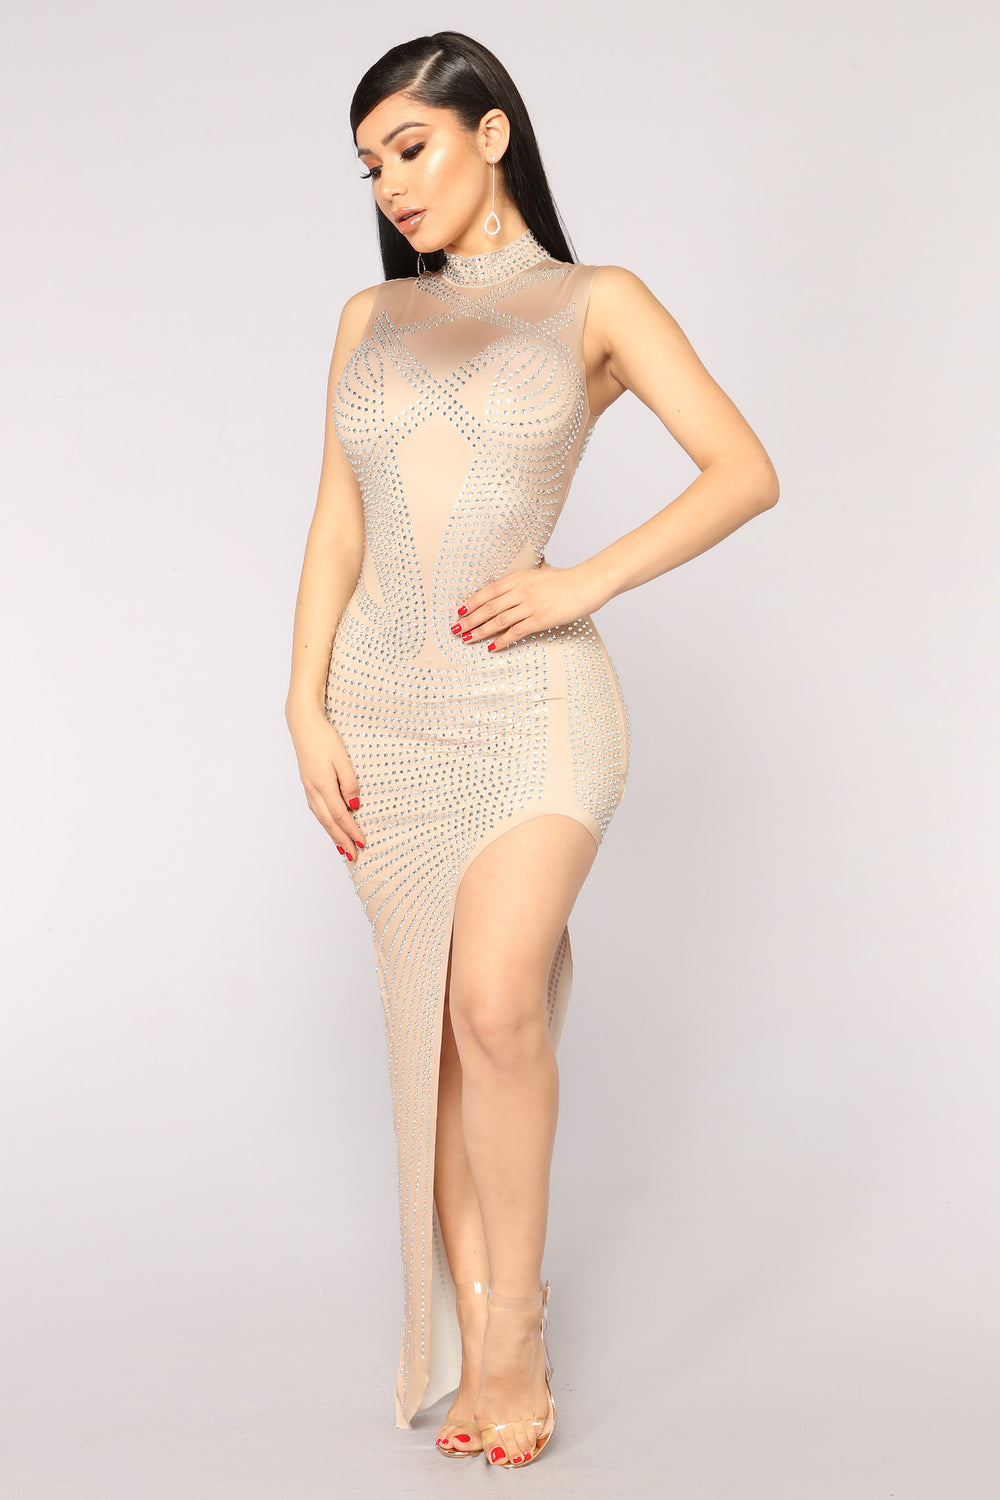 Prized Possession On Rhinestone Dress - Nude